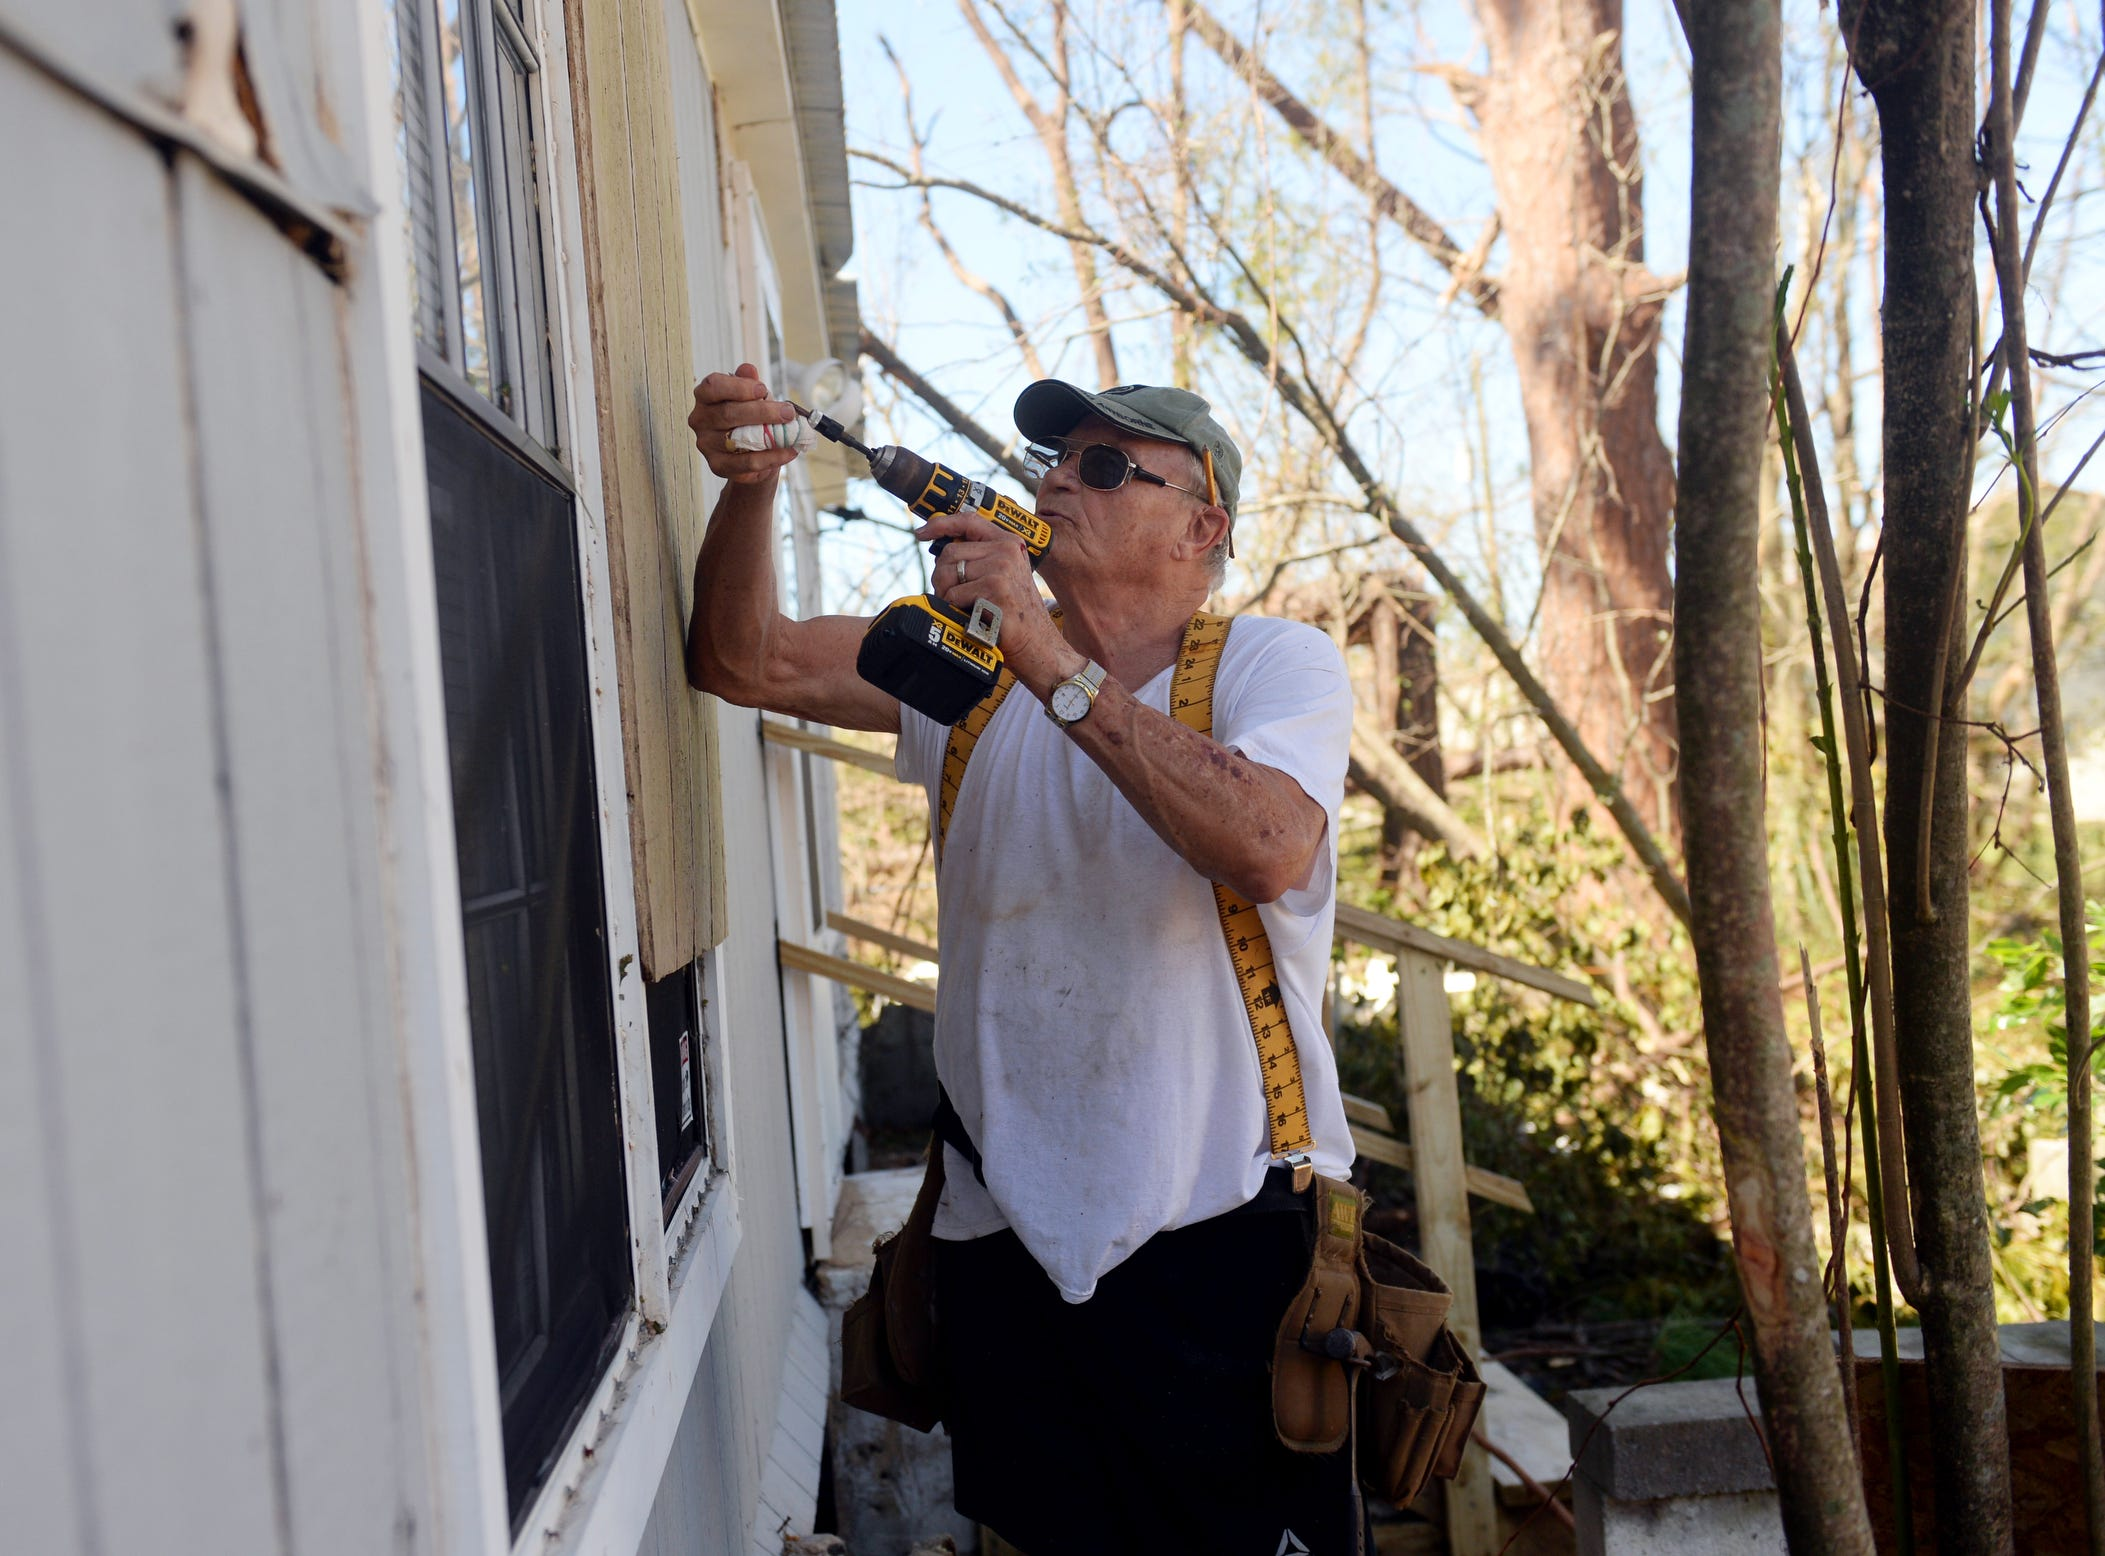 "Clayton Wentworth puts up boards to cover a few of the broken windows of his home after Hurricane Michael blew through the area on Wednesday. Wentworth and his wife, Lucretia, are going to leave the area and wait for the power and water to be turned back on. ""I guess this will be a good time to travel and see some friends around the country,"" Lucretia Wentworth said."